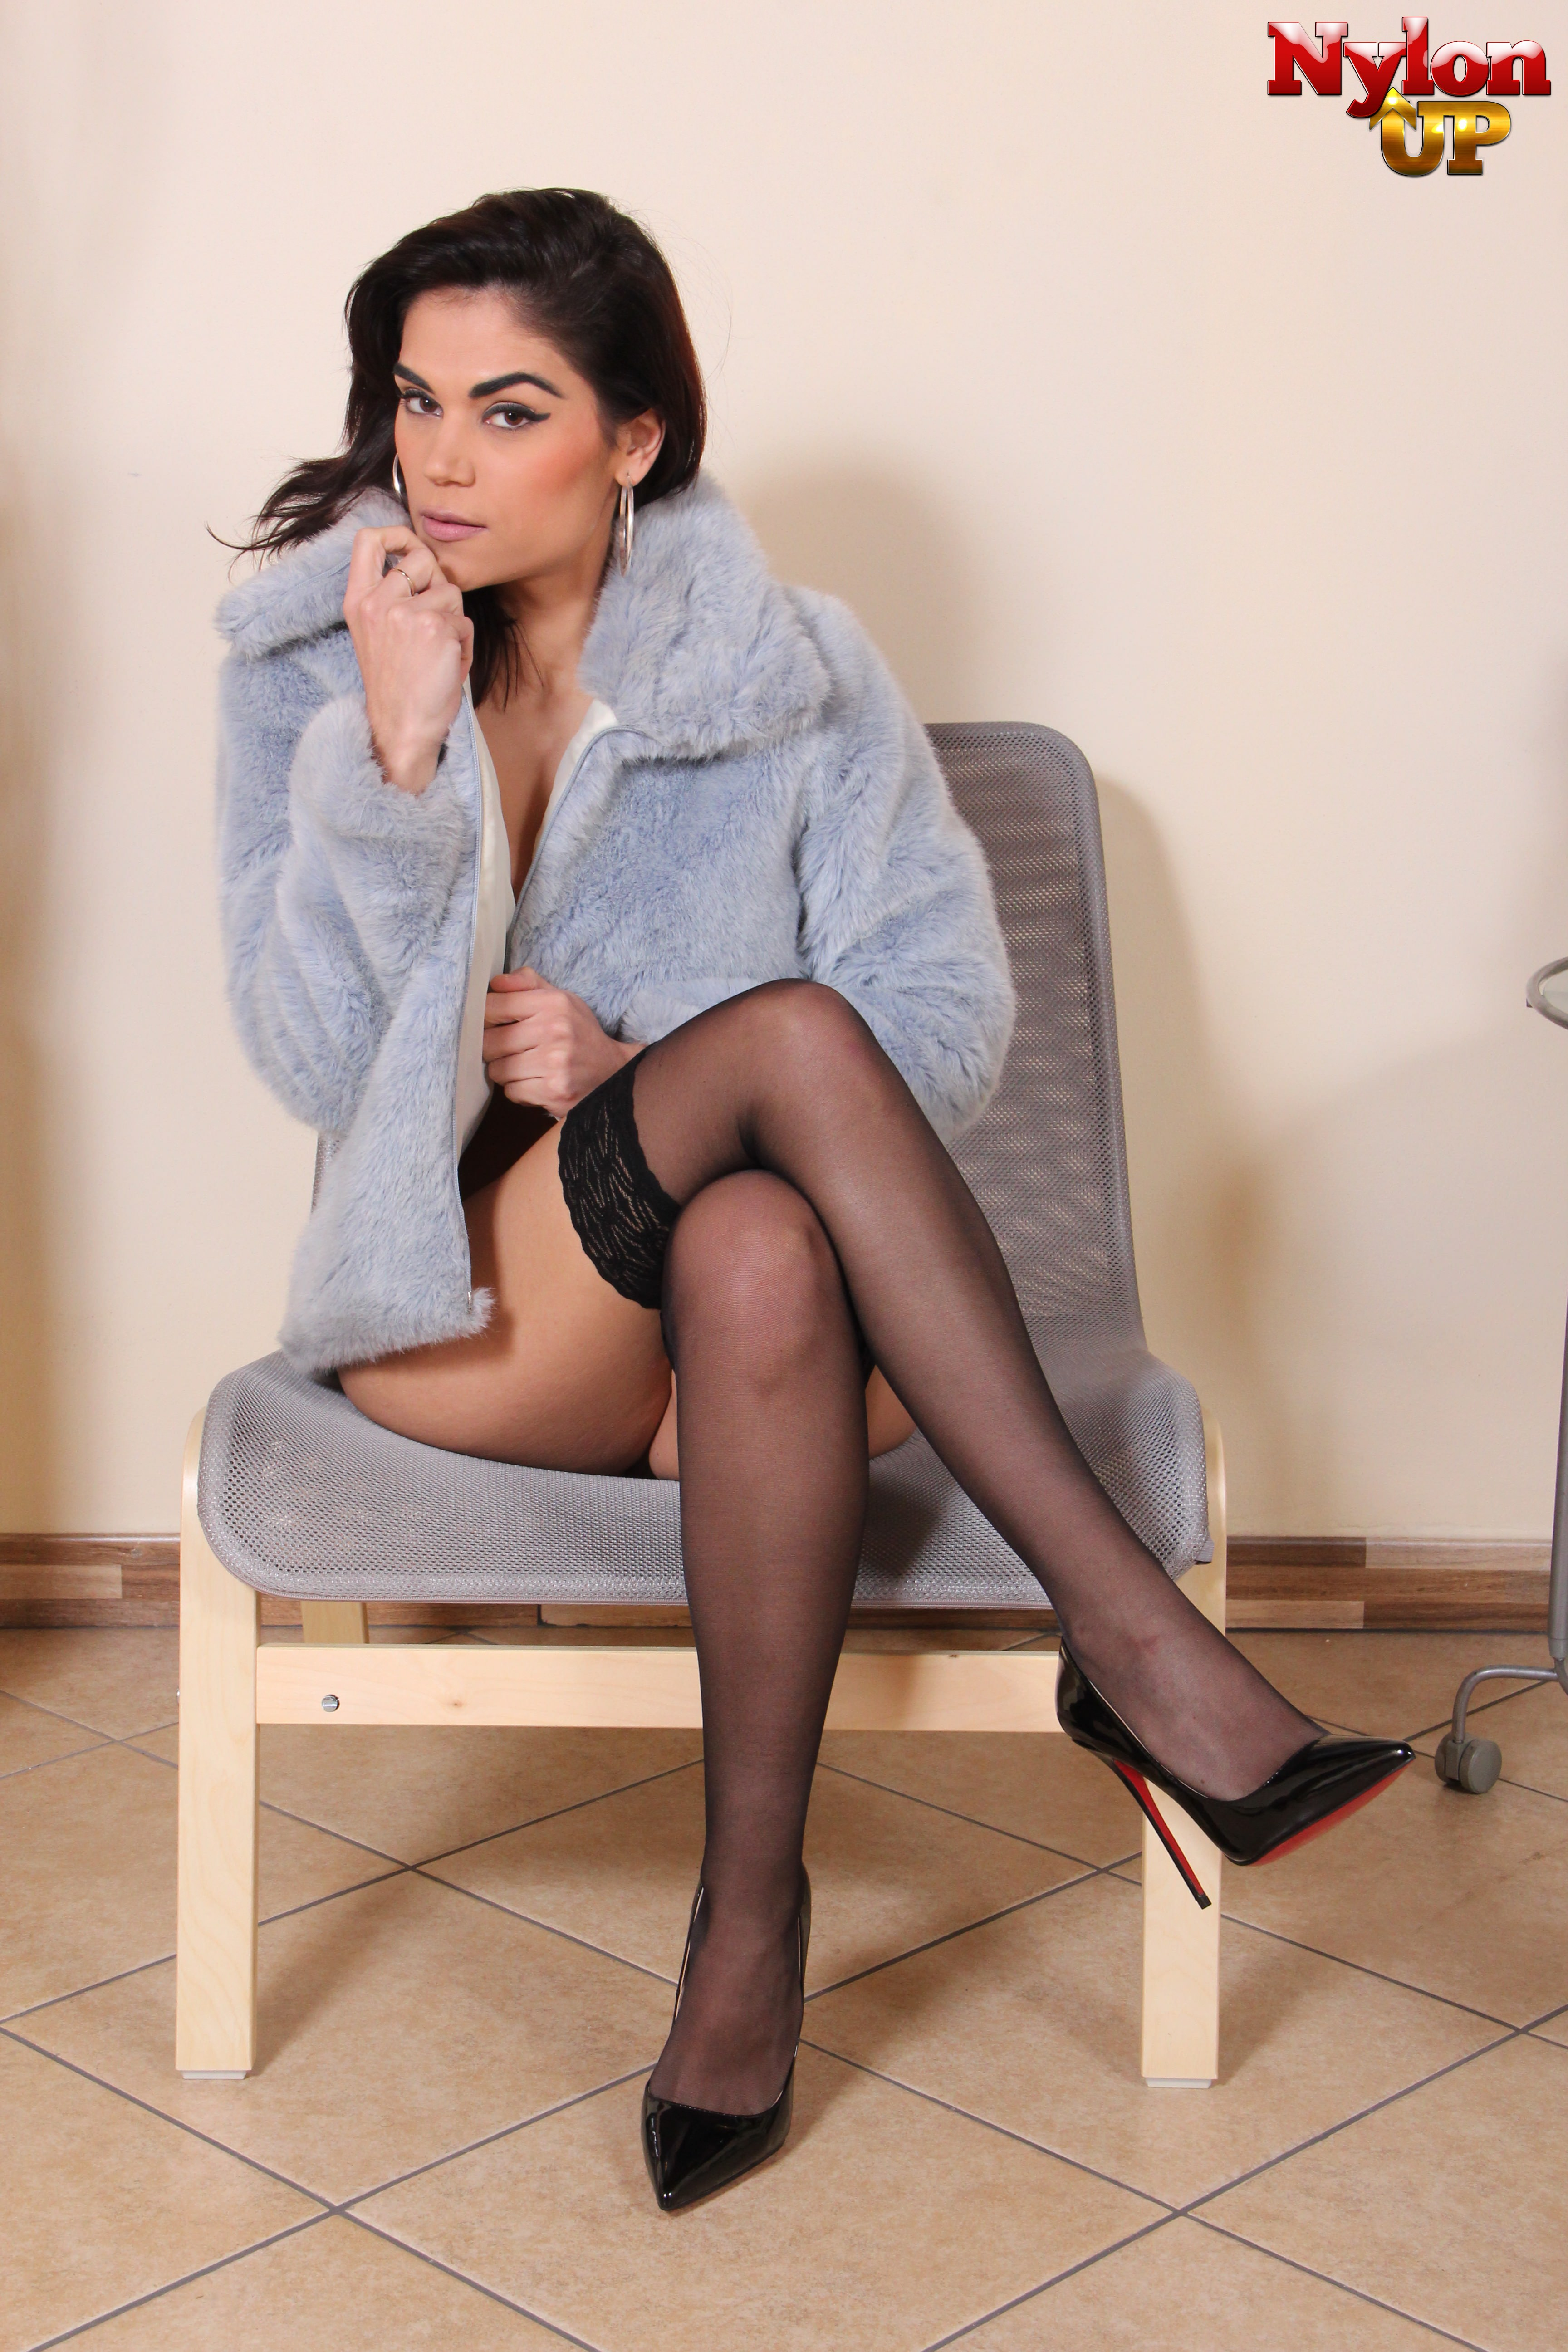 NylonUp Free Gallery  Hot and naughty girls in nylons for you